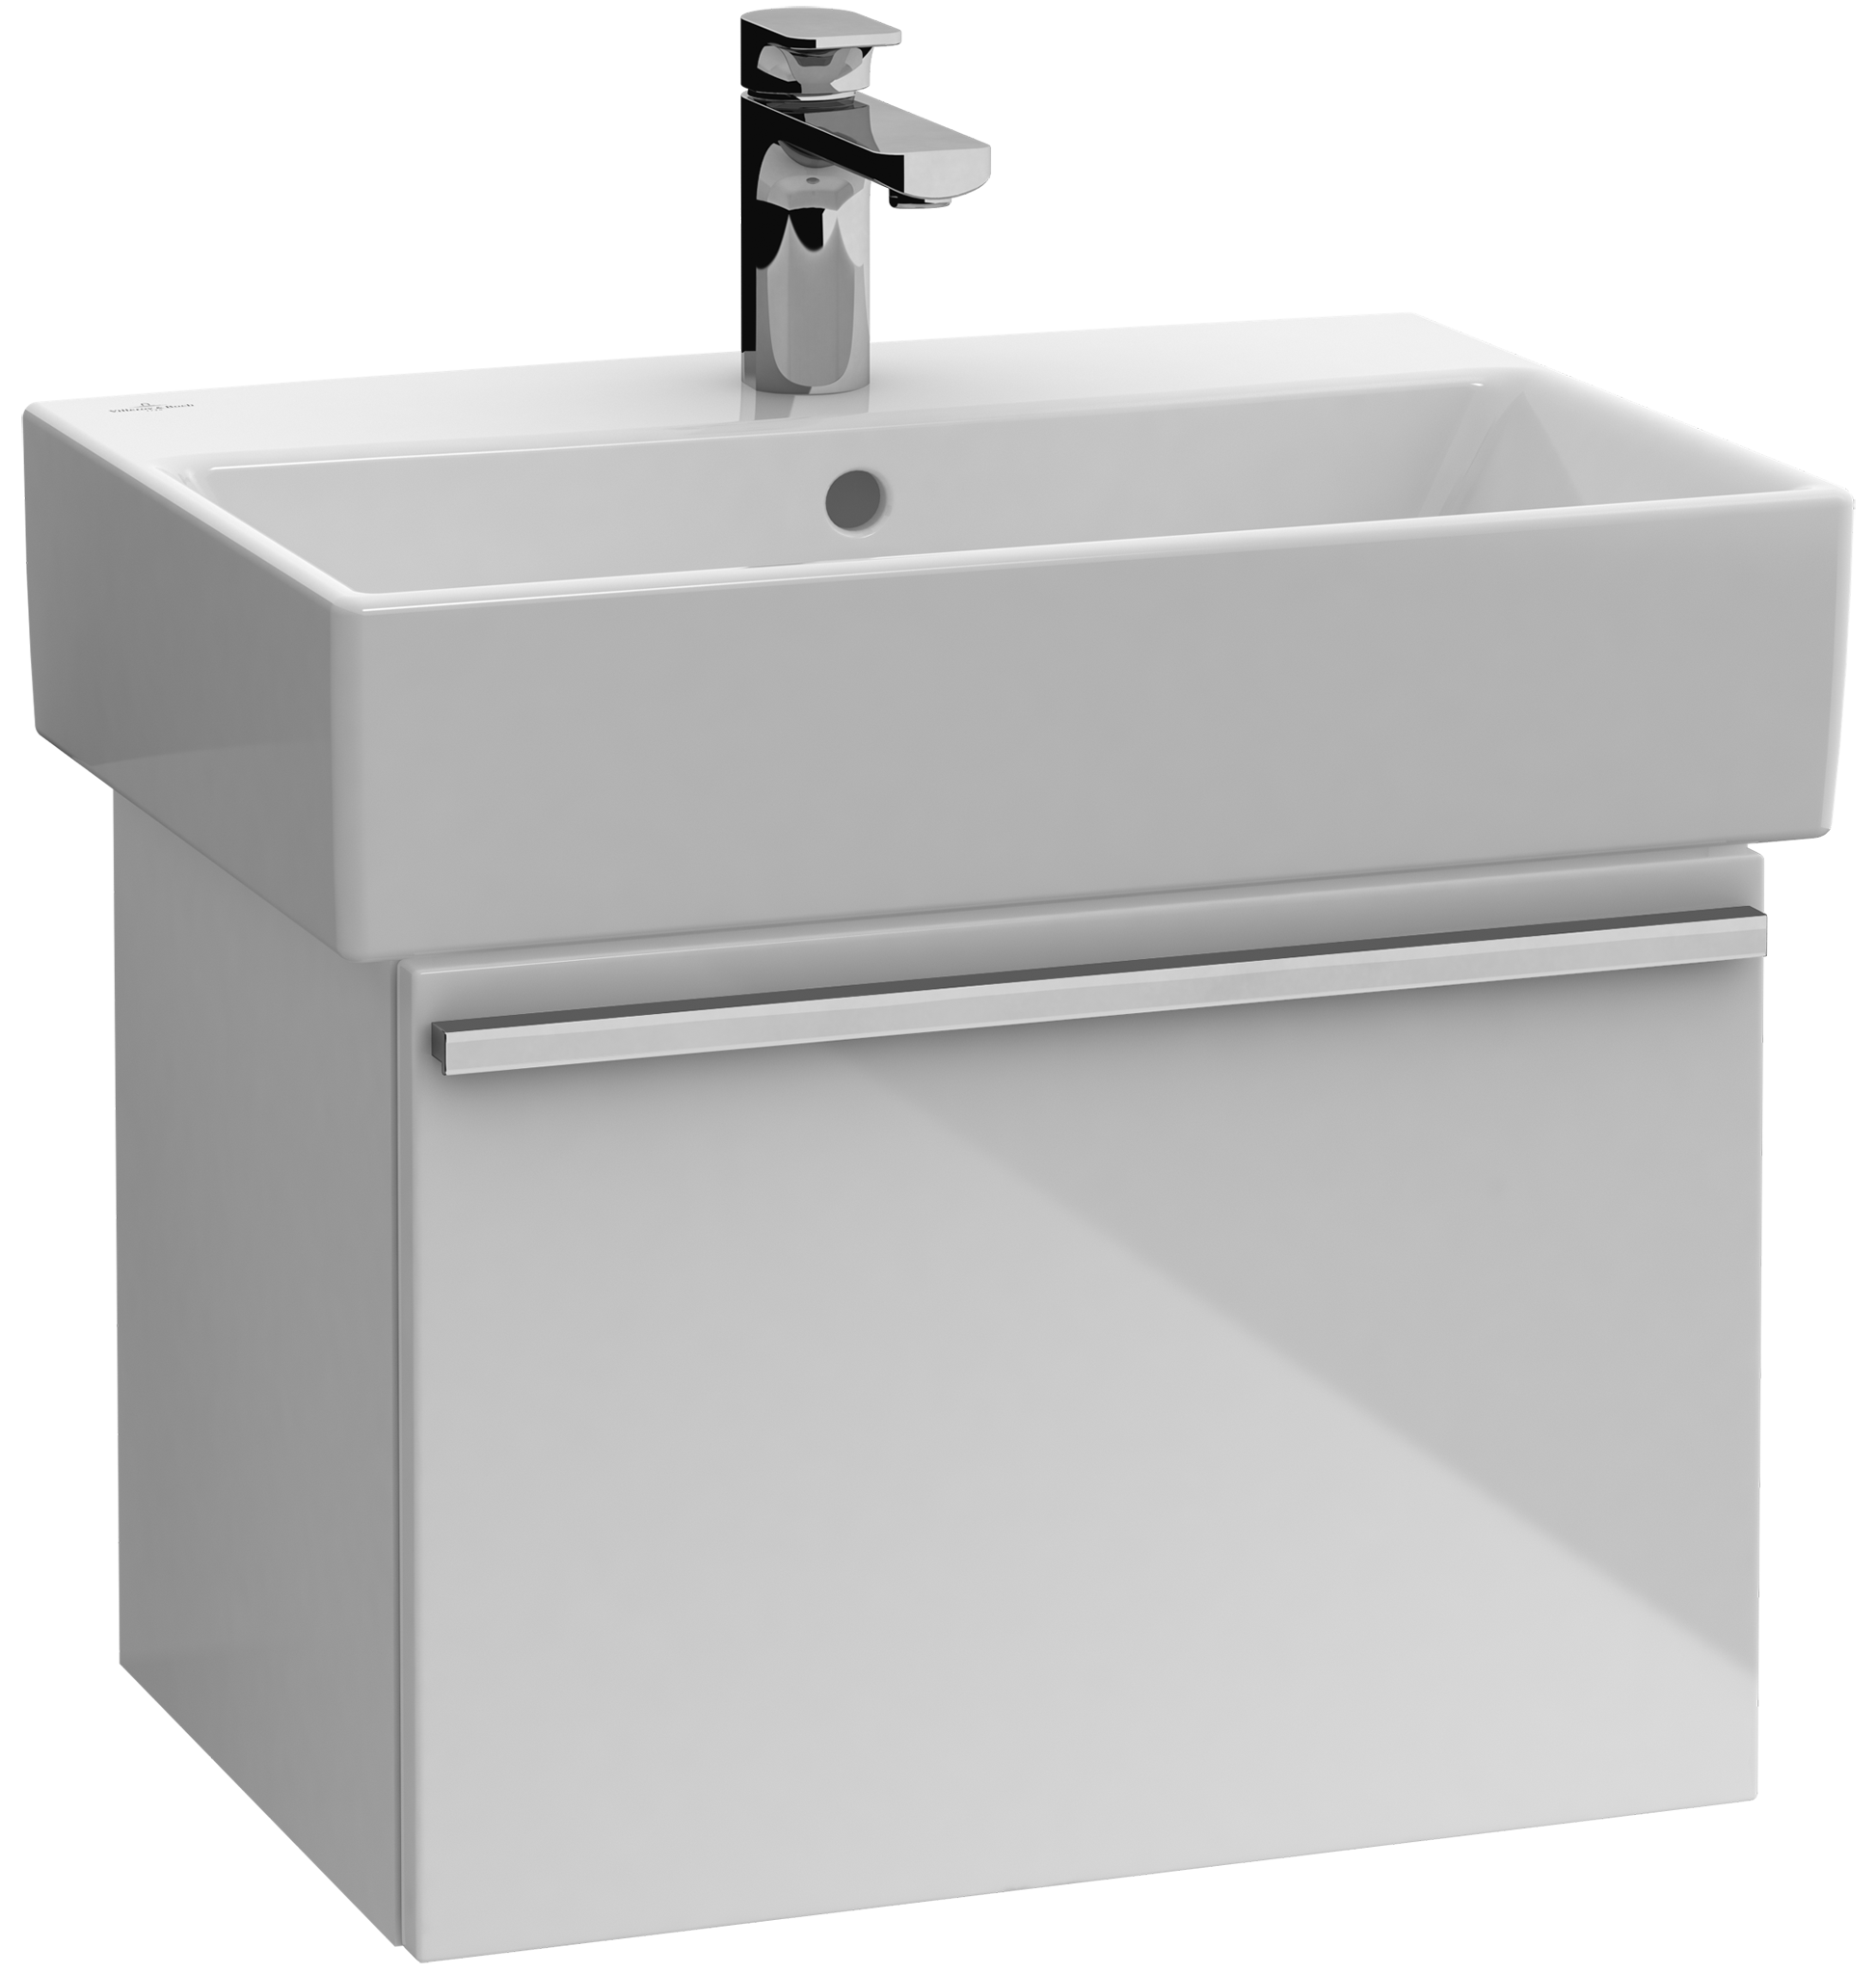 Villeroy And Boch Vanity central line vanity unit a292n2 - villeroy & boch